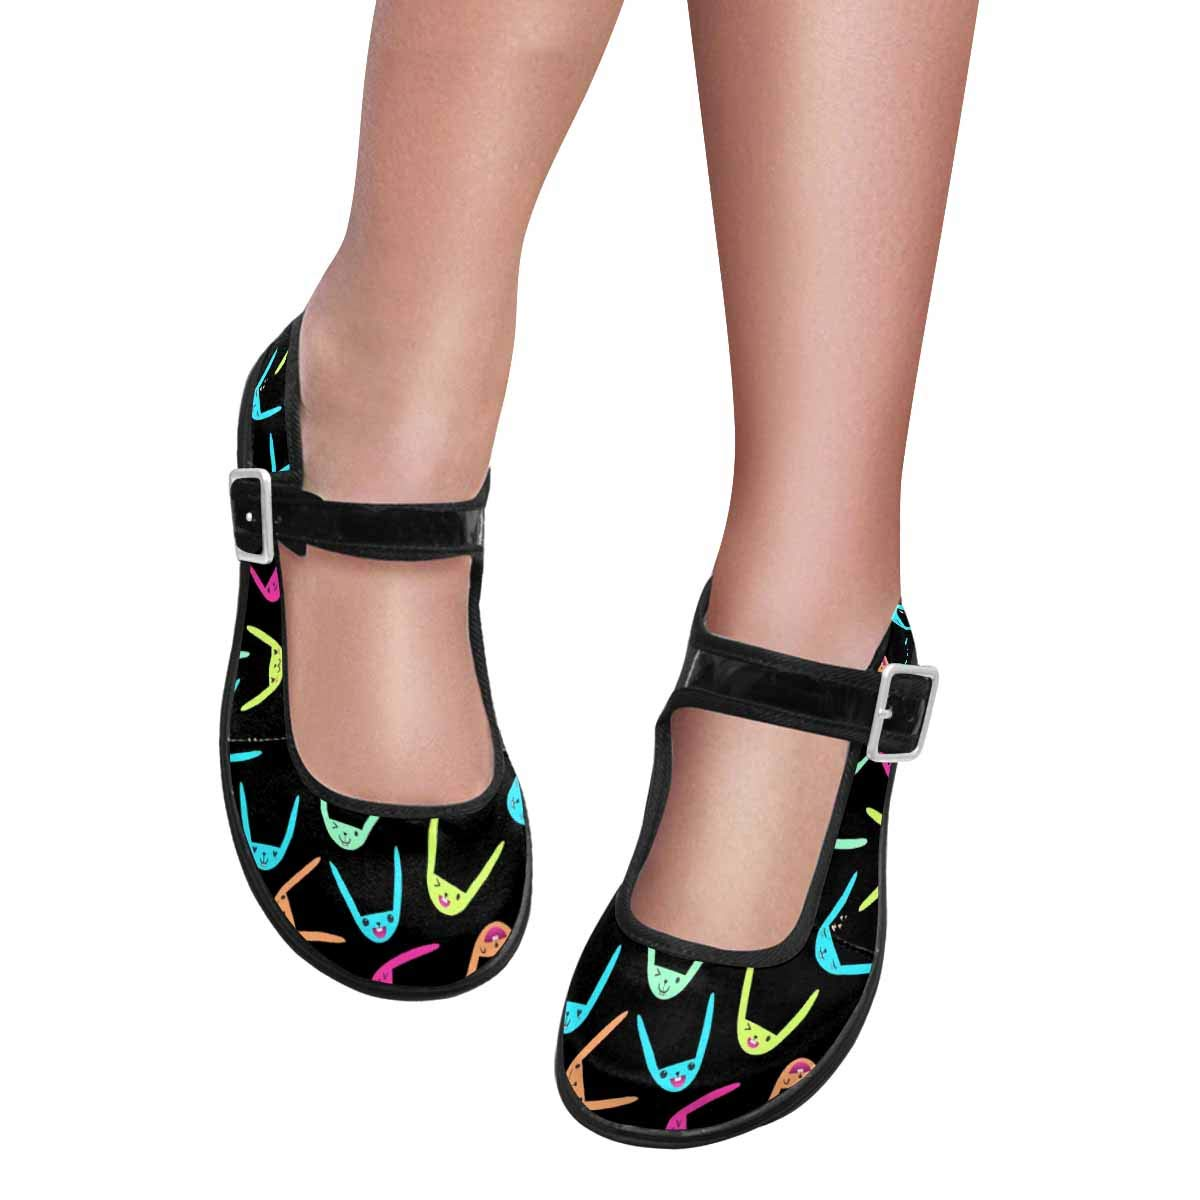 INTERESTPRINT Womens Satin Mary Jane Flats Ballet Shoes Cute Easter Bunny Faces